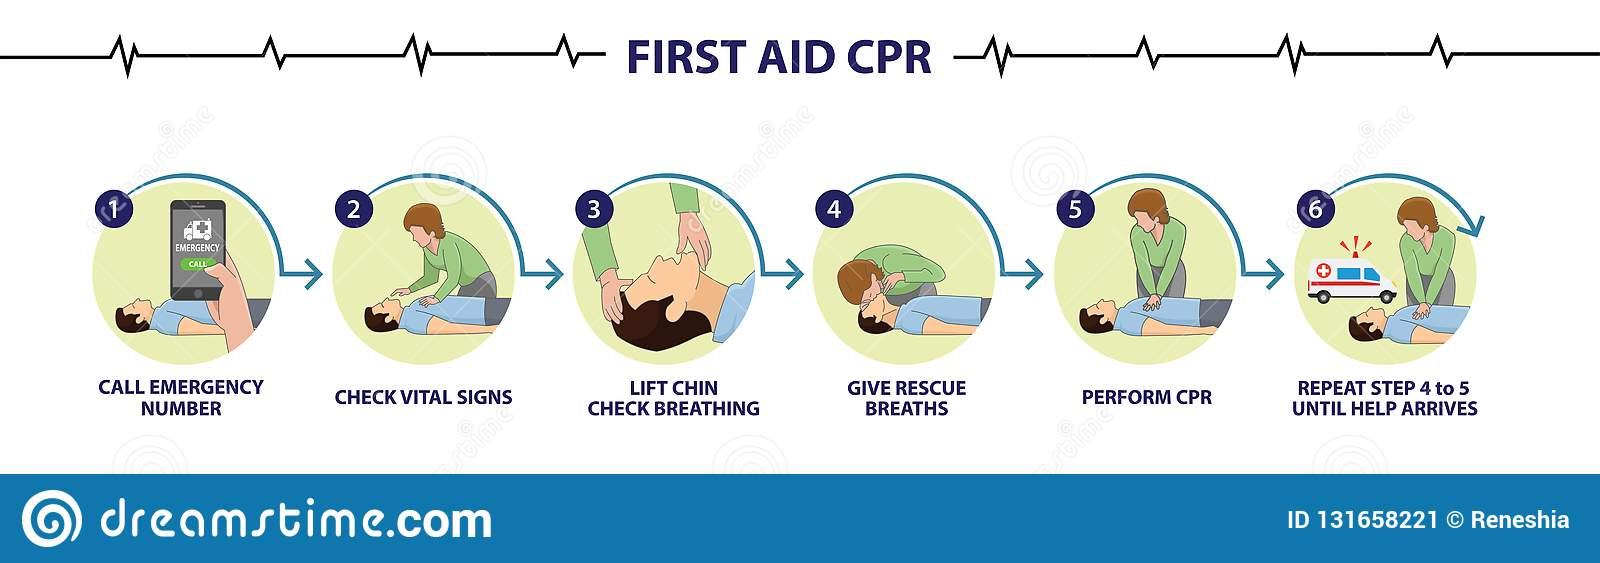 How To Perform Emergency First Aid Cpr Step By Step Procedure Stock